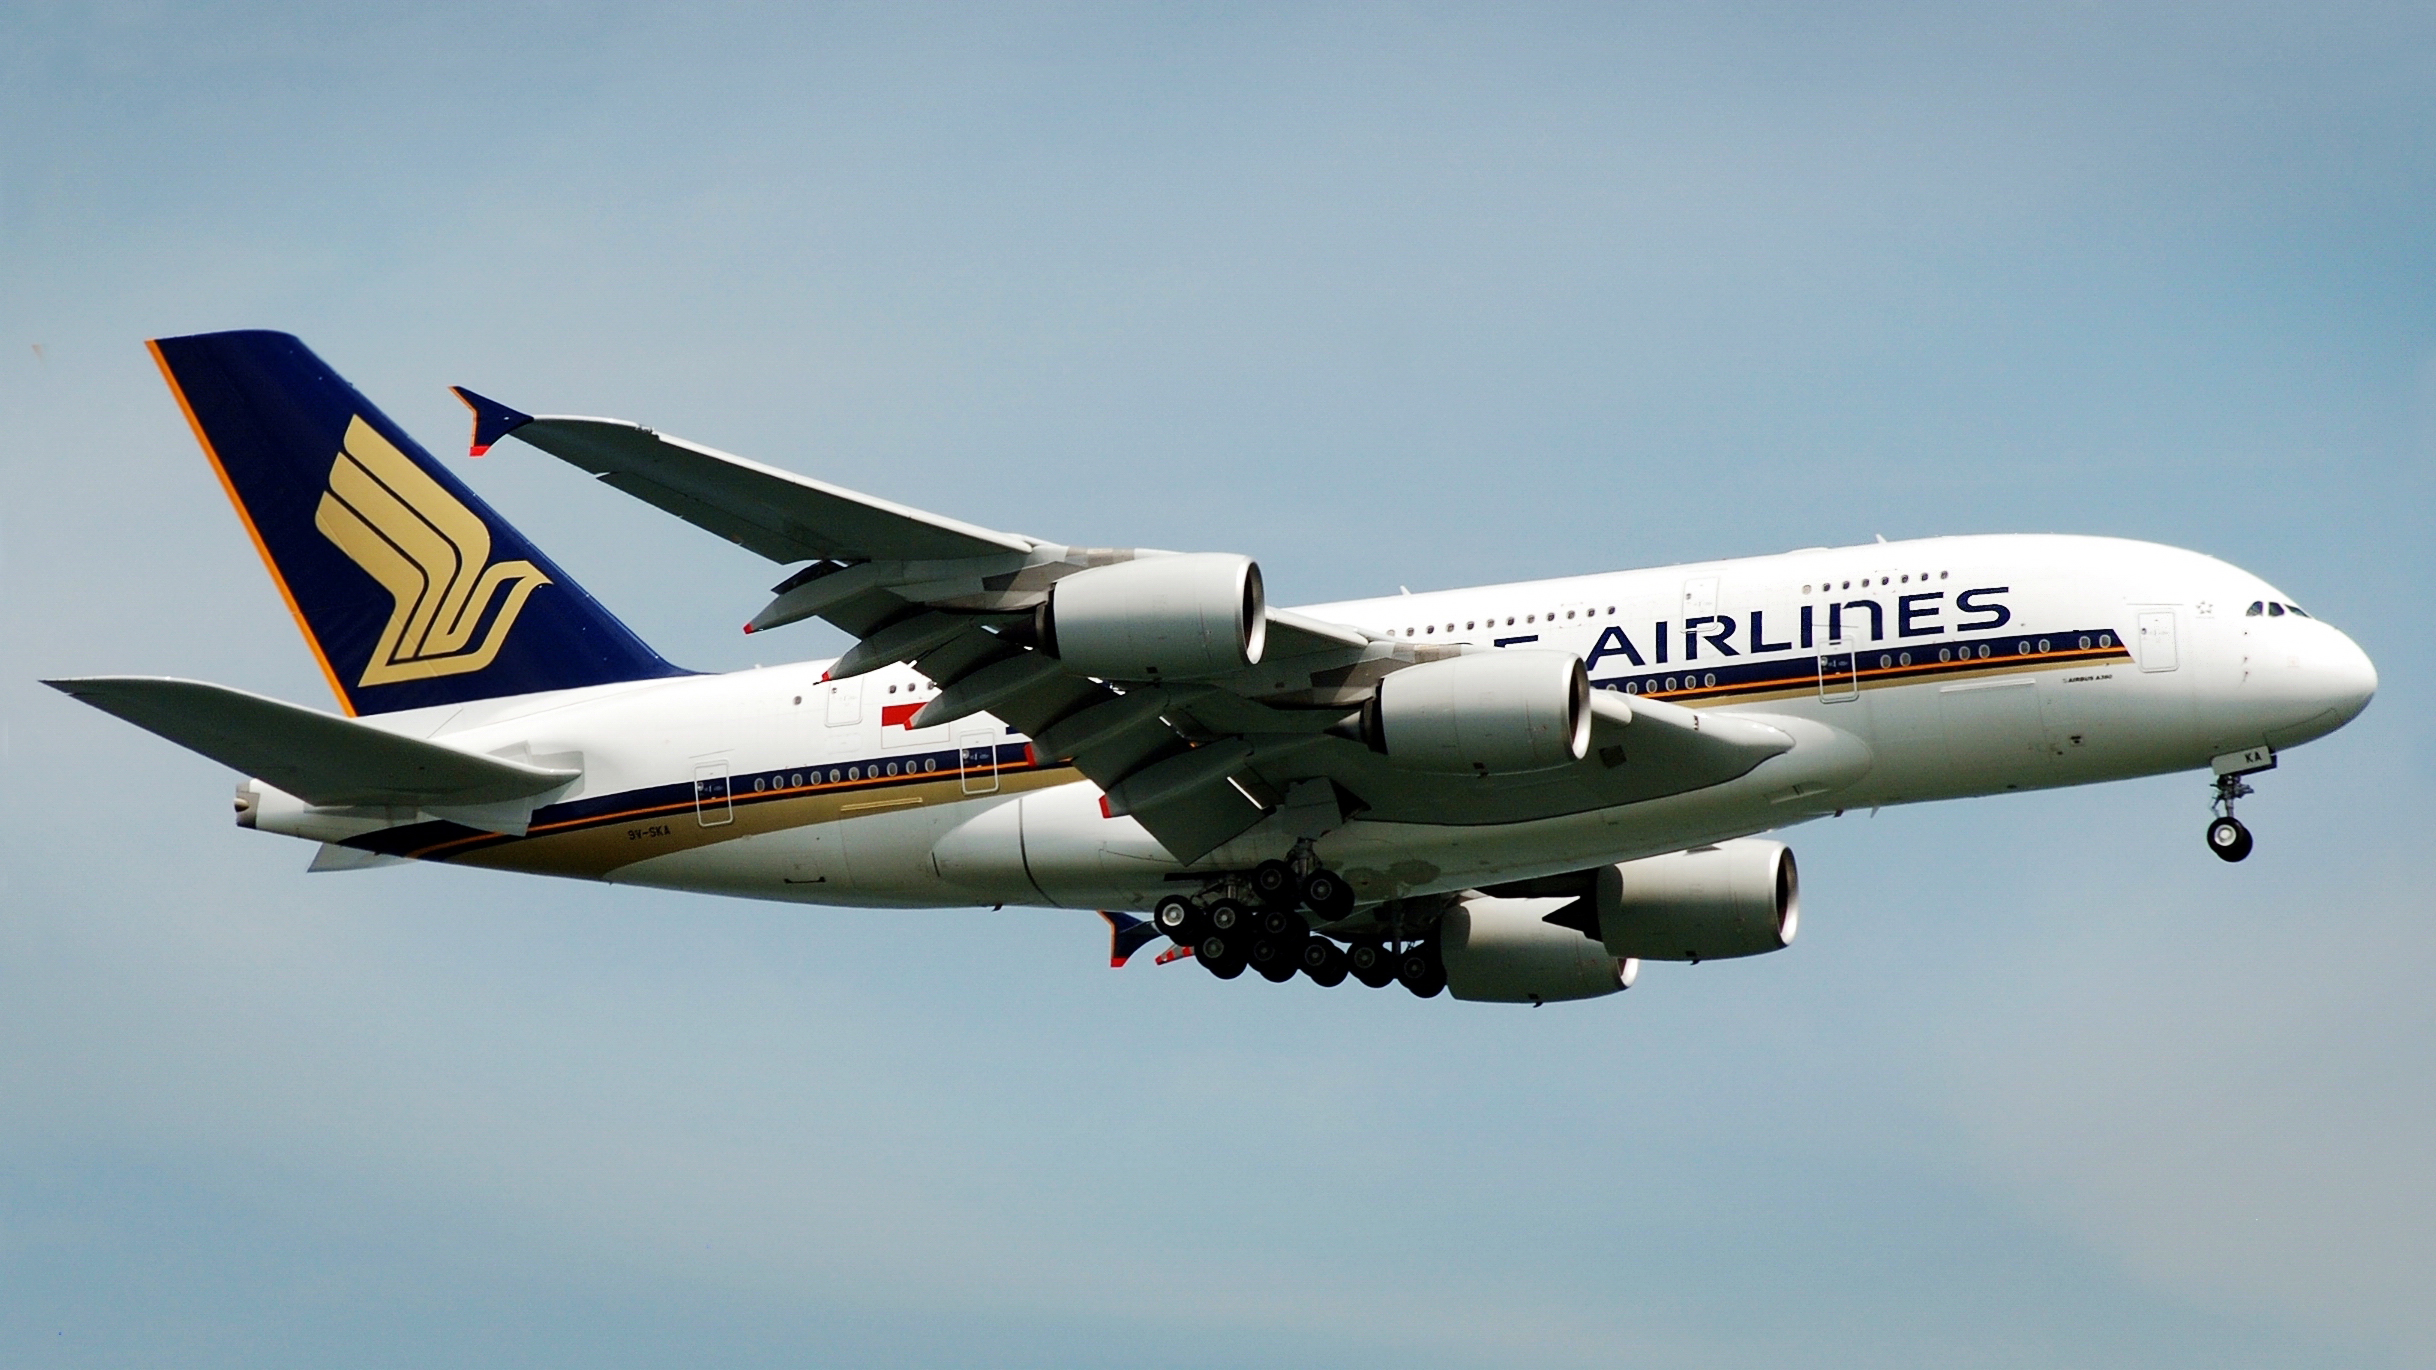 File:SIA Airbus A380, 9V-SKA, SIN 8.jpg - Wikipedia, the free ...